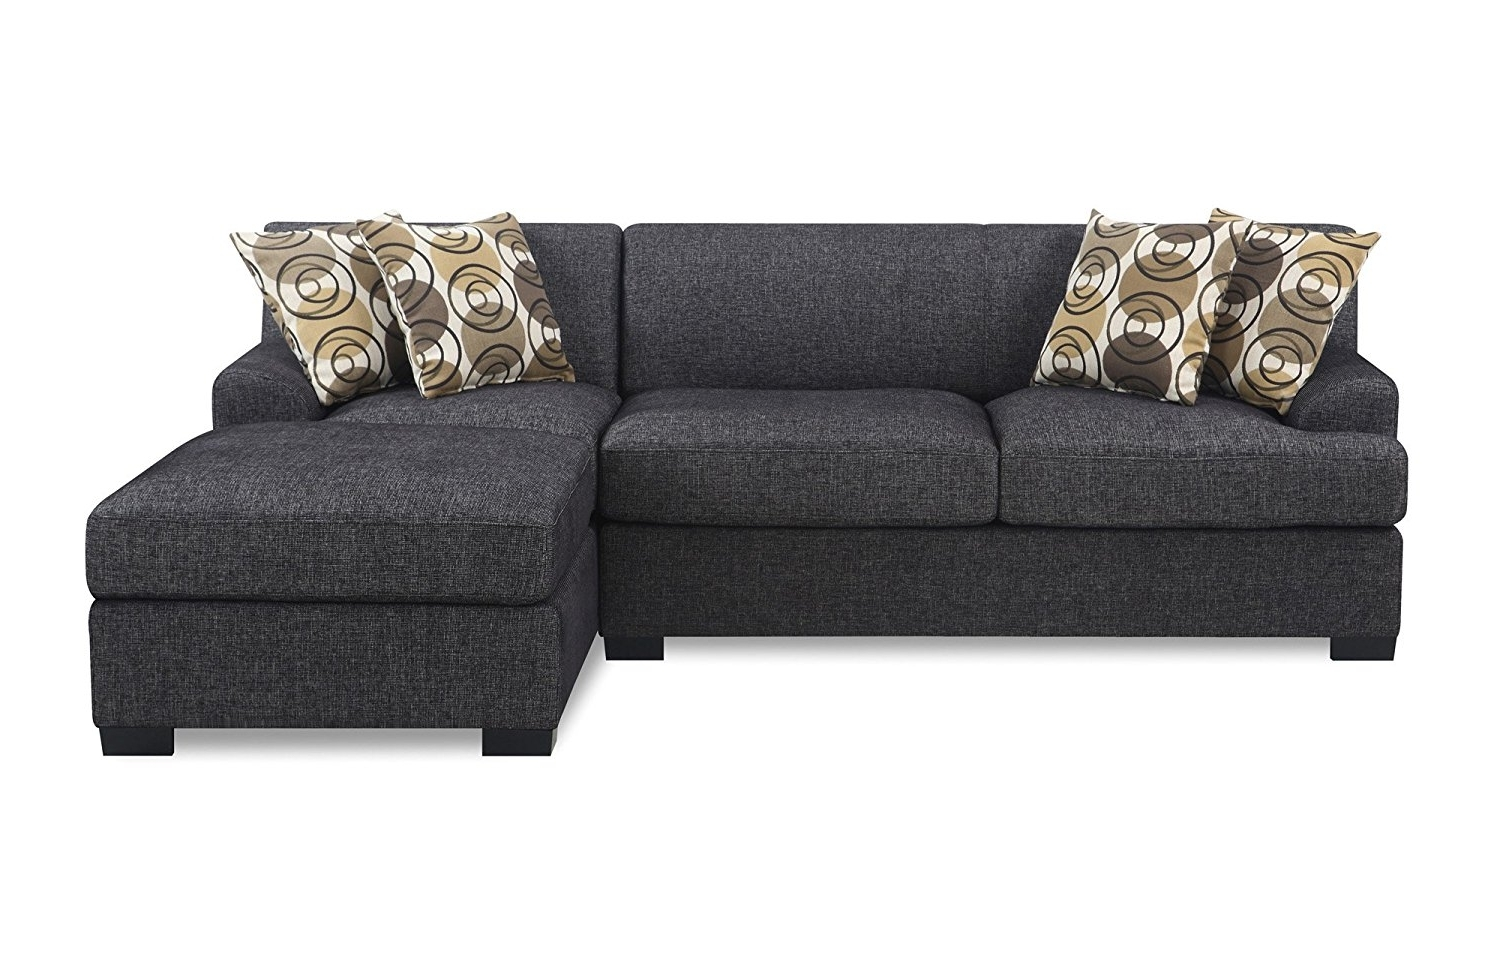 Newest Amazon: Bobkona Benford 2 Piece Chaise Loveseat Sectional Sofa Throughout Loveseat Chaises (View 8 of 15)